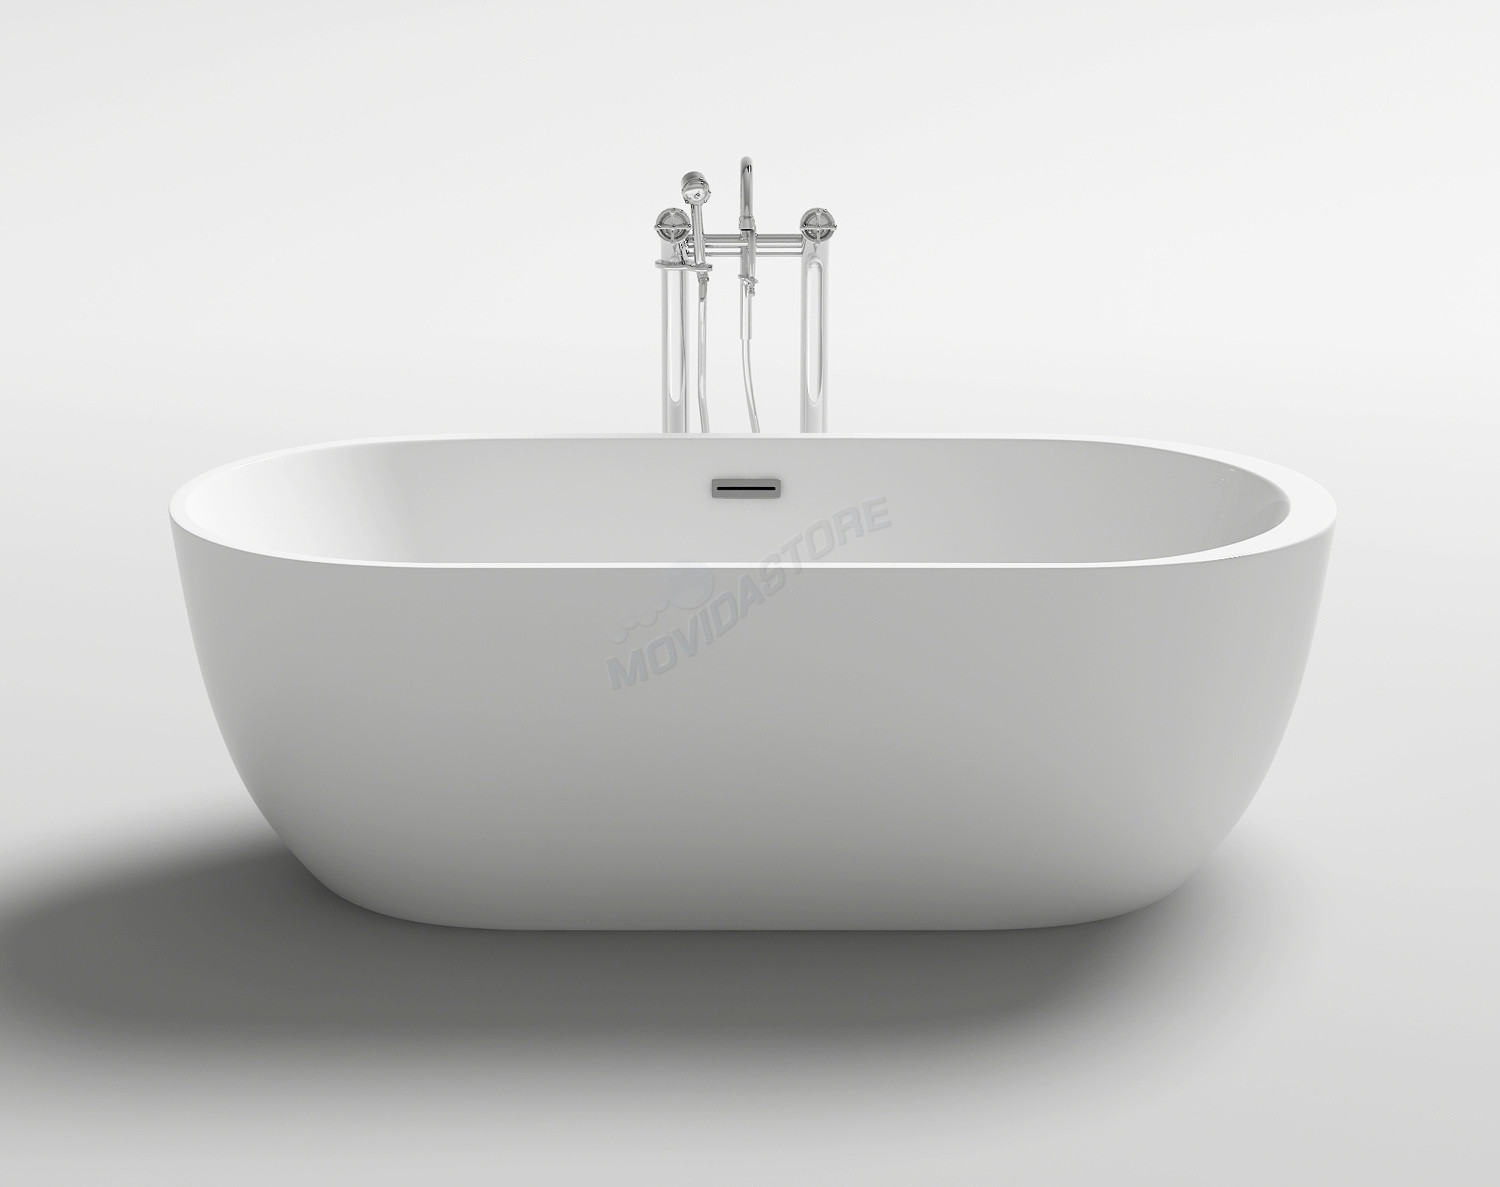 Vasca da bagno one freestanding moderna design vasche for Vasca bagno design